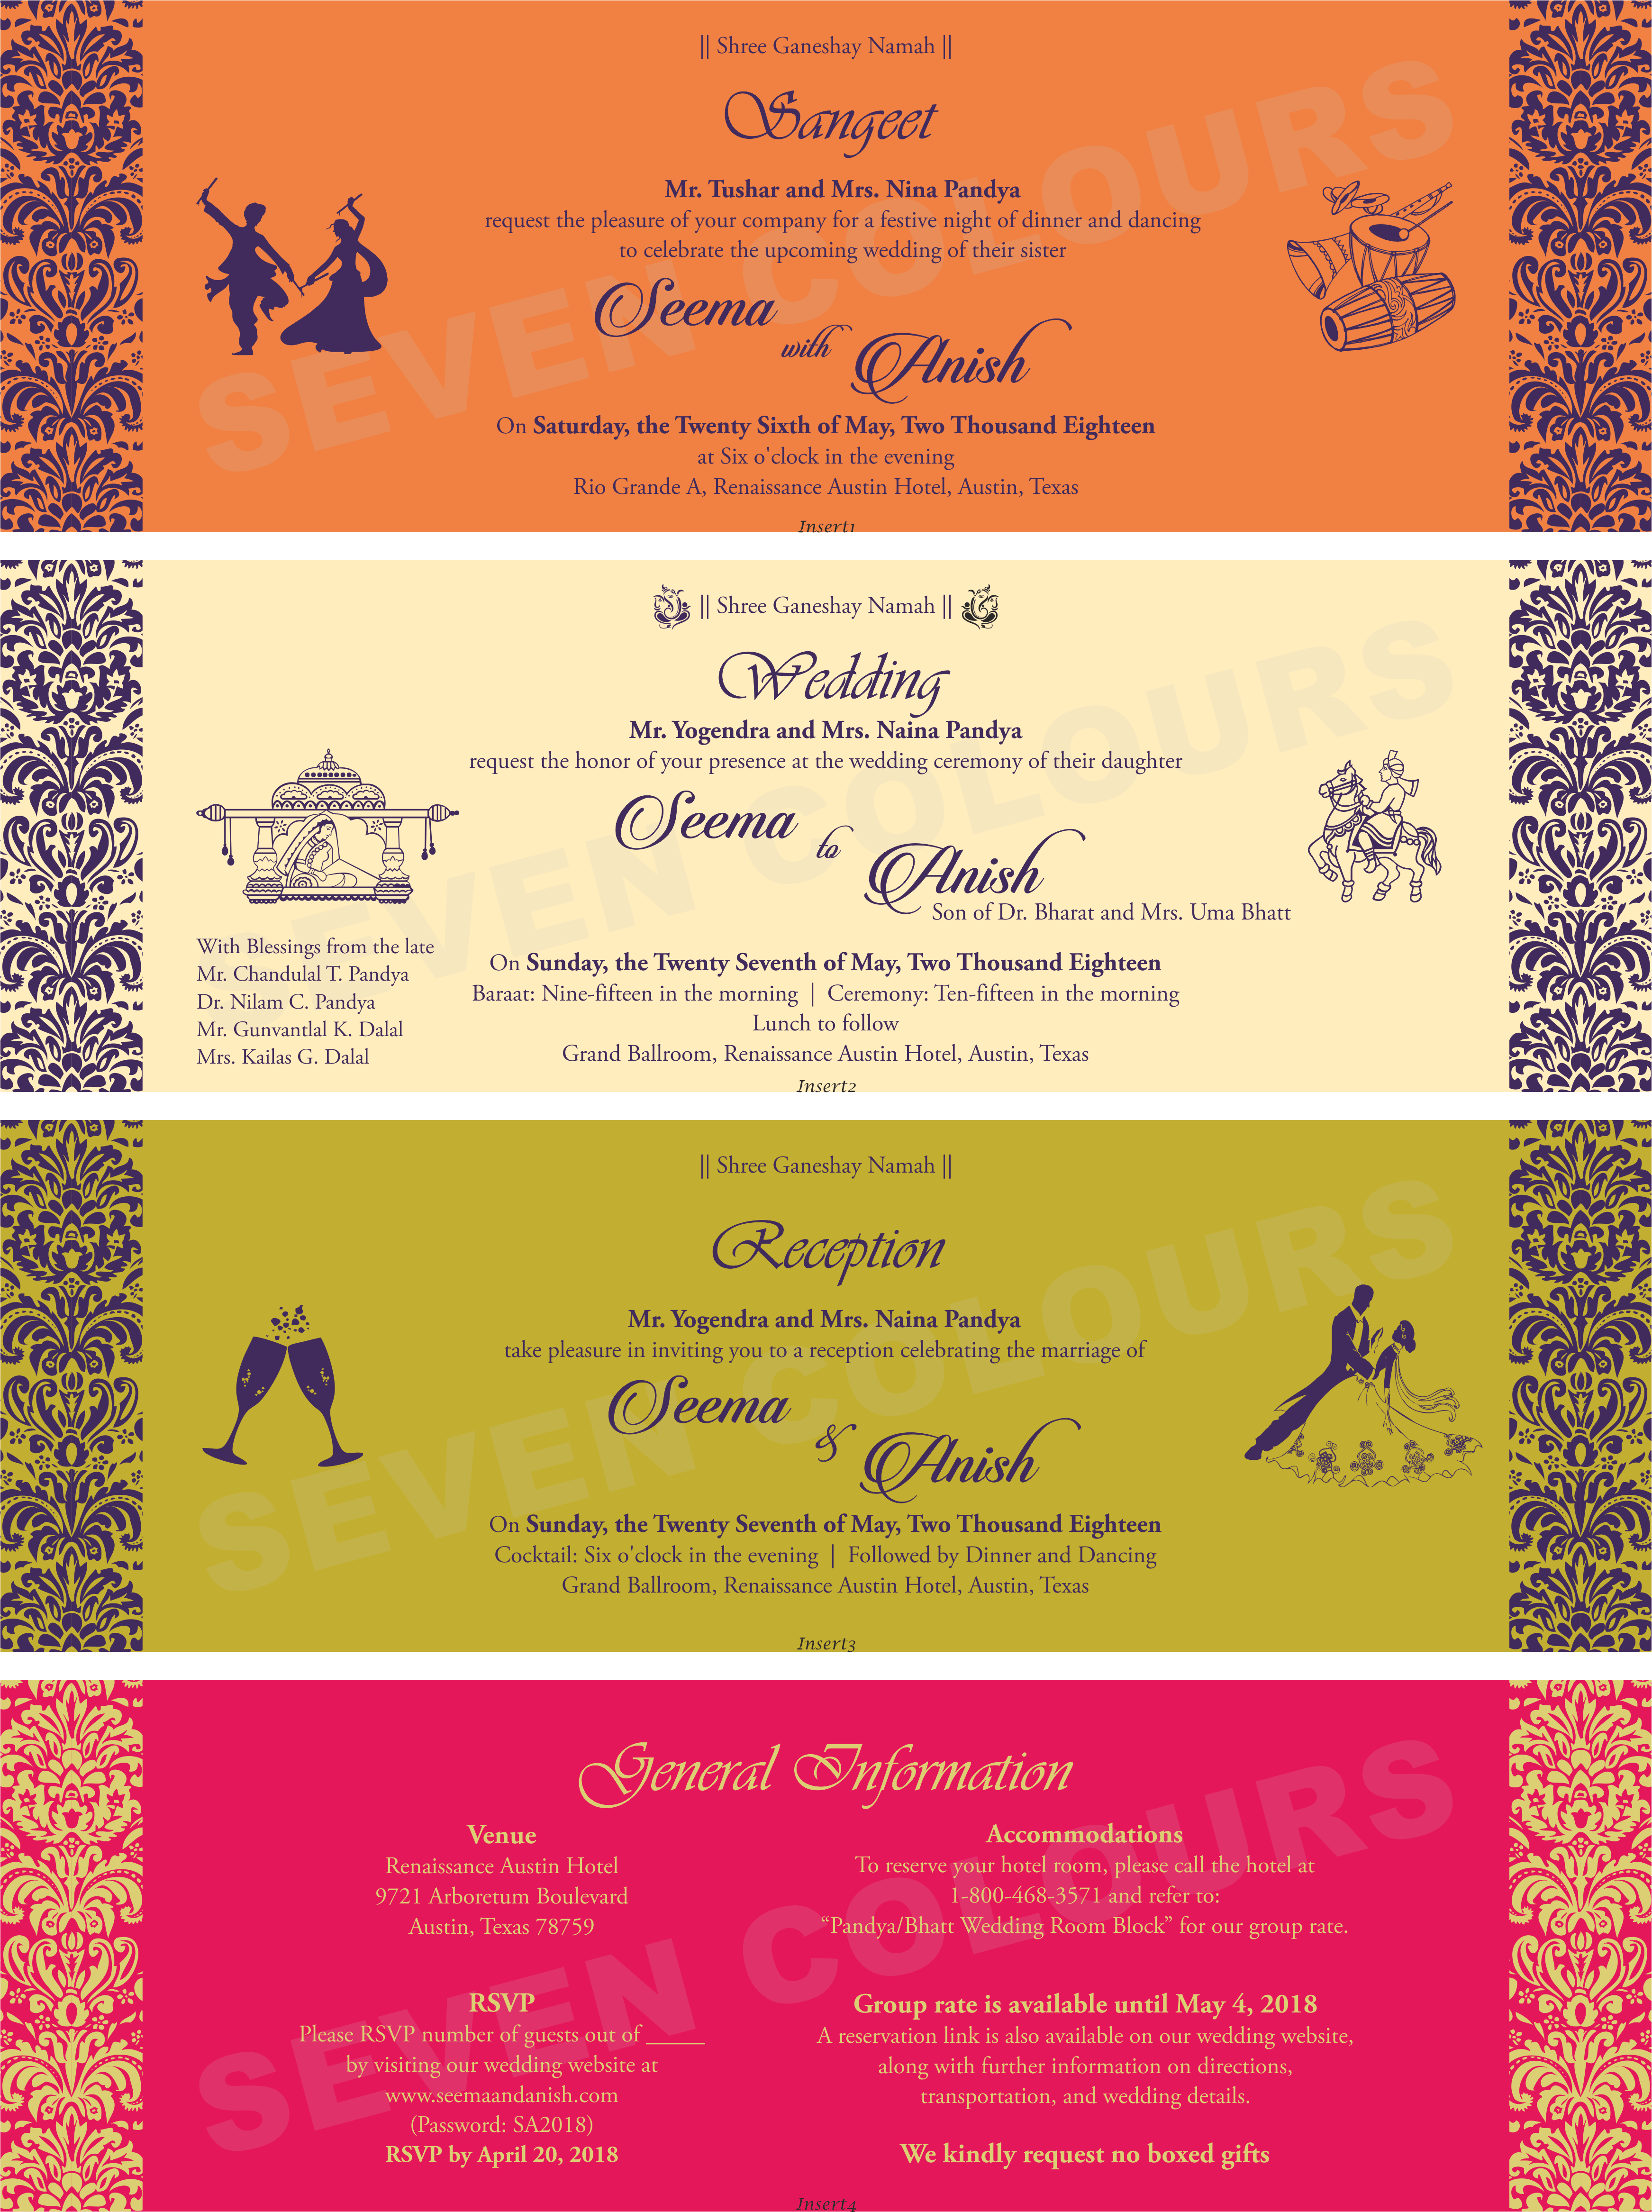 Sangeet Wedding Reception And Rsvp Writing Sample Matter For Wedding The D Hindu Wedding Invitation Cards How To Write Wedding Invitations Hindu Wedding Cards